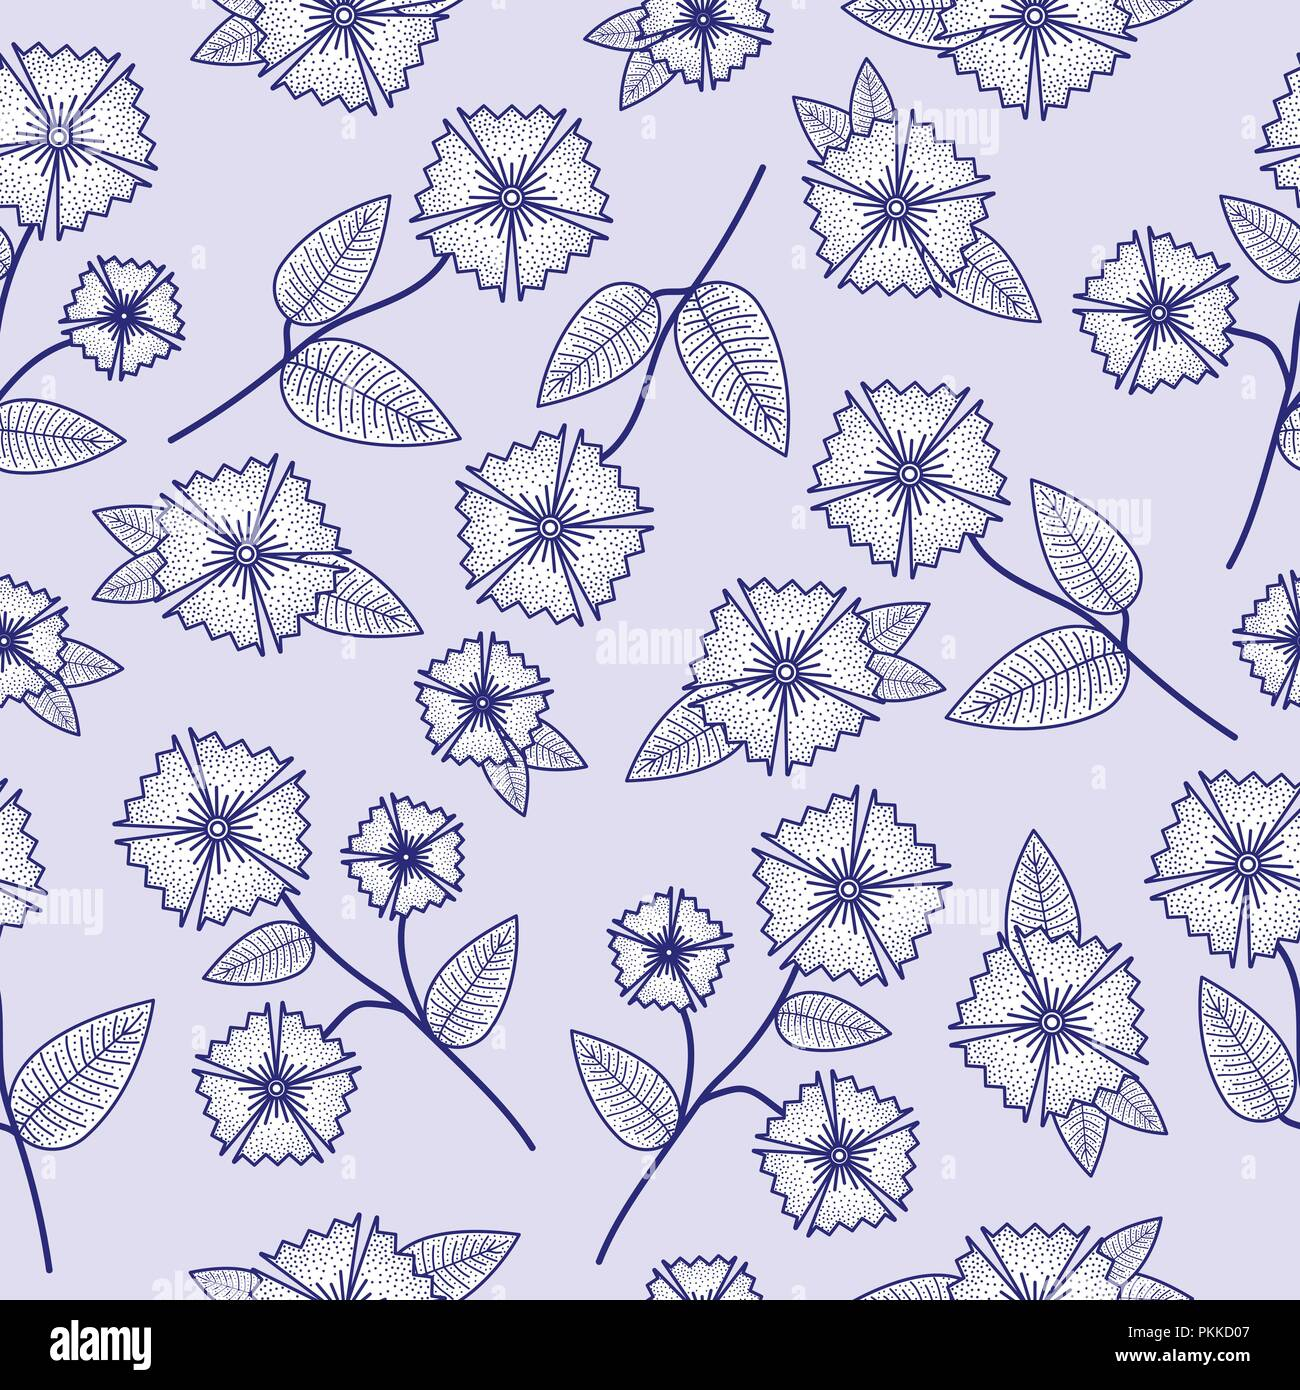 Gentle seamless pattern with abstract flowers. - Stock Vector